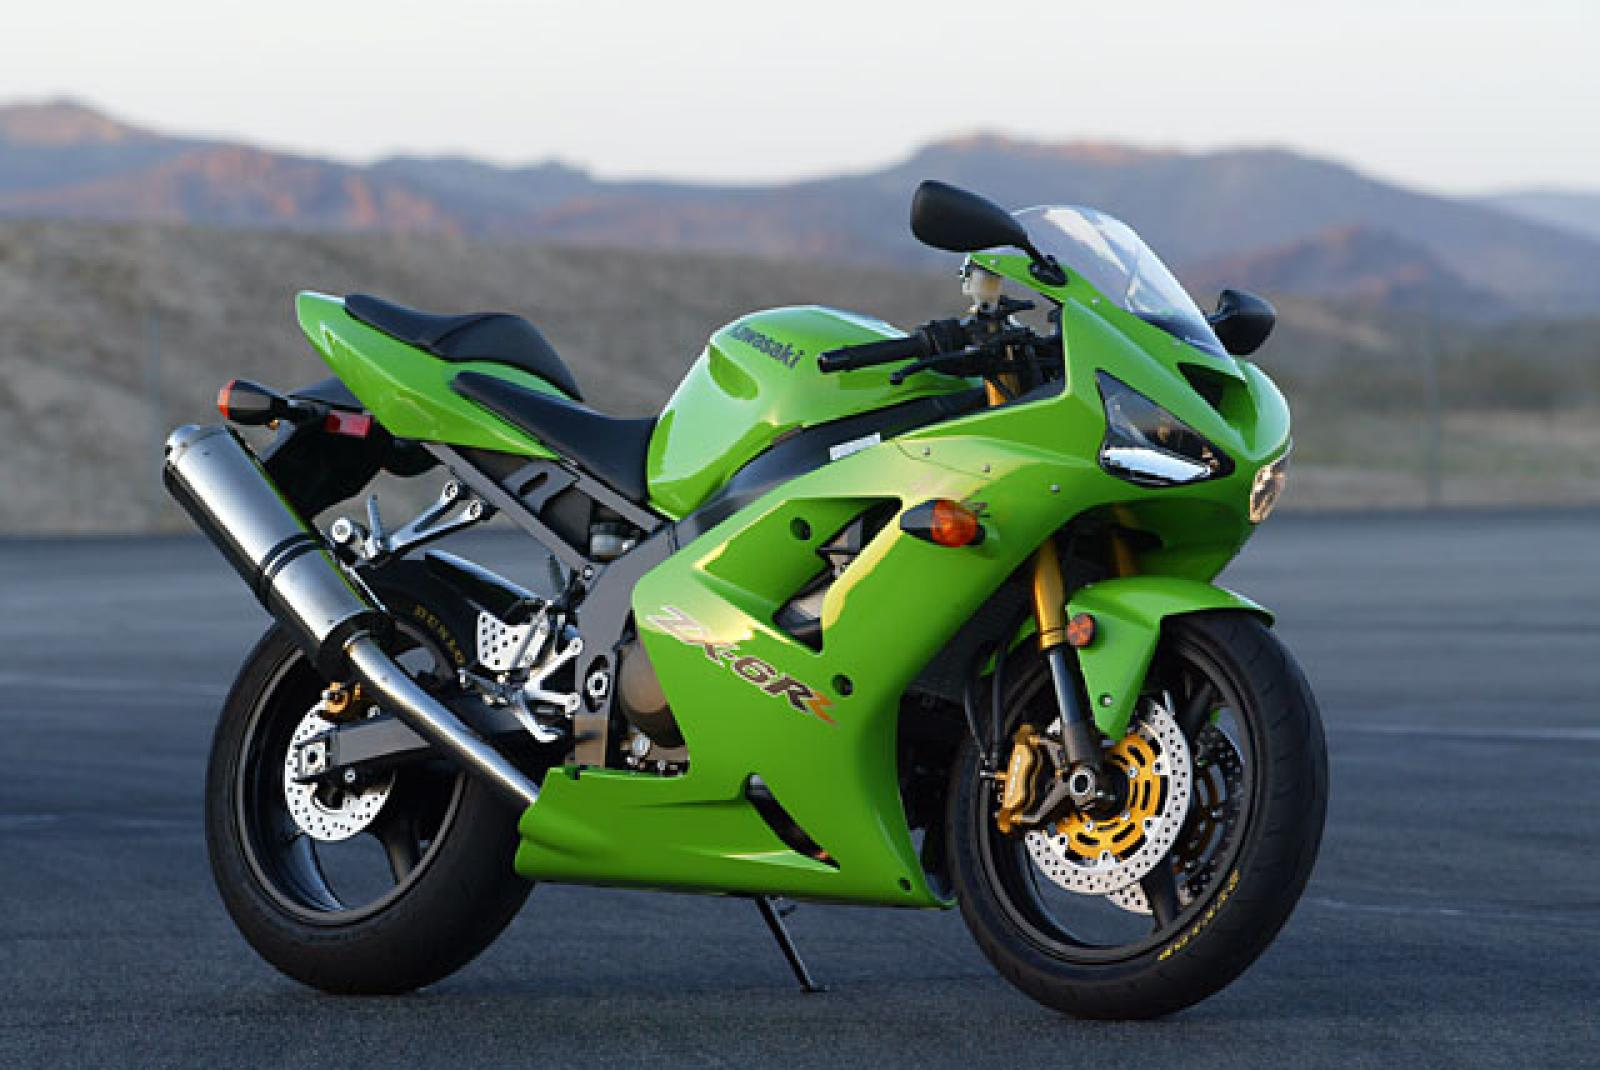 2004 Kawasaki ZX-6R Comparison